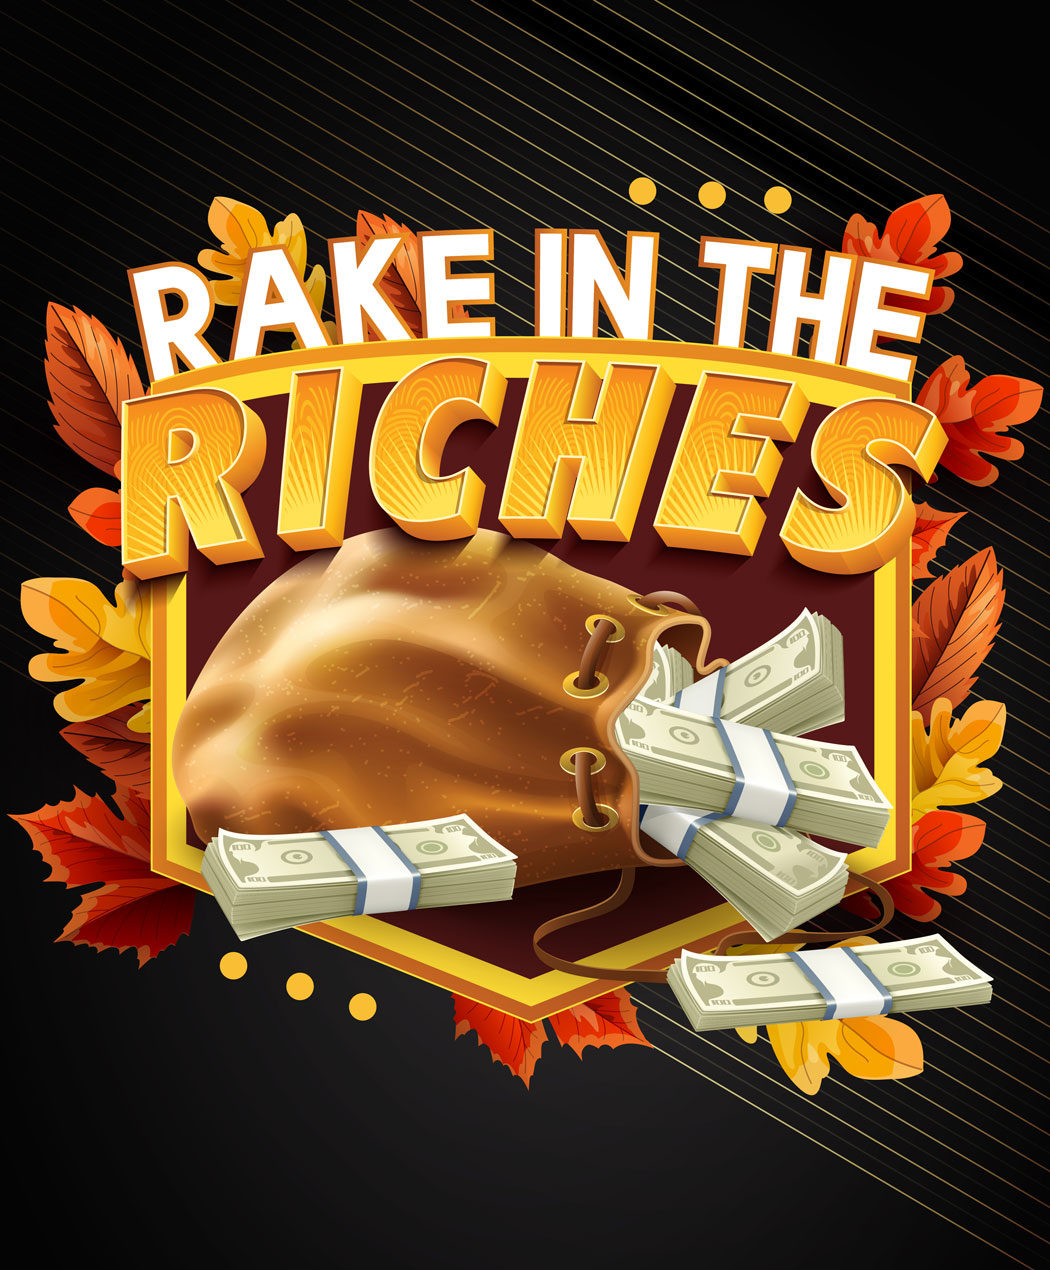 Rake in the Riches